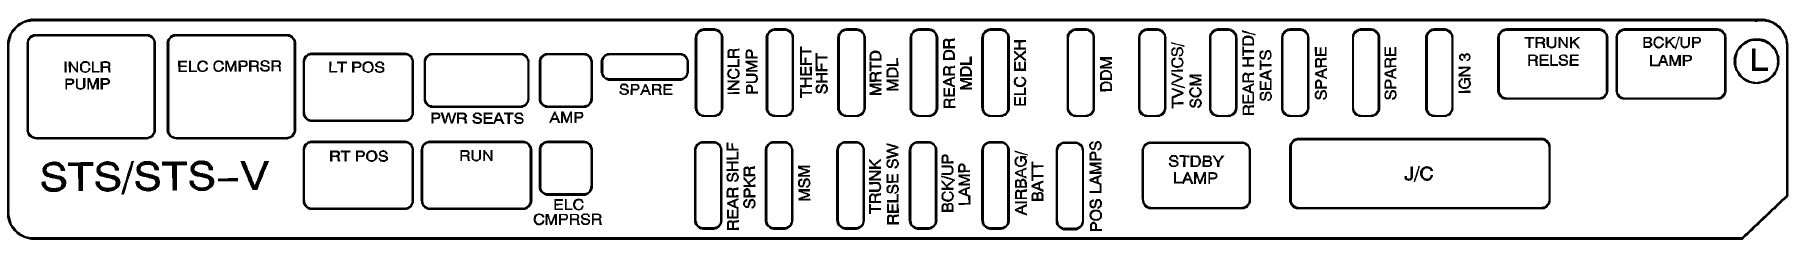 fuse box on cadillac cts wiring diagramcadillac sts fuse box wiring diagram schema blogcadillac sts (2008 2009) fuse box diagram